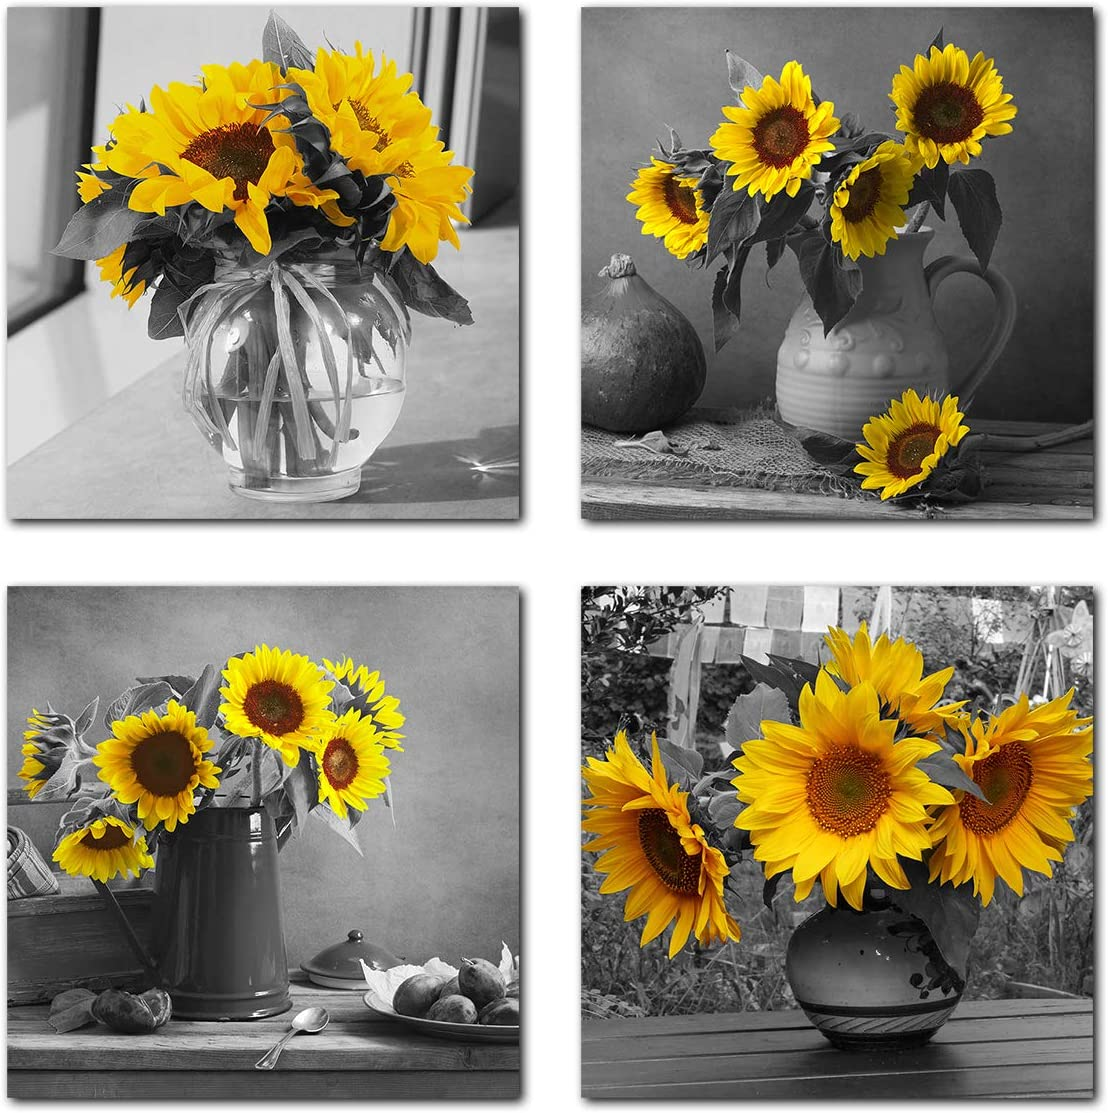 Sunflower Canvas Wall Art Yellow Floral Pictures Blossom Flowers Black and White Painting Prints 4 Panel Bathroom Bedroom Living Room Decor 12 x 12 Inches